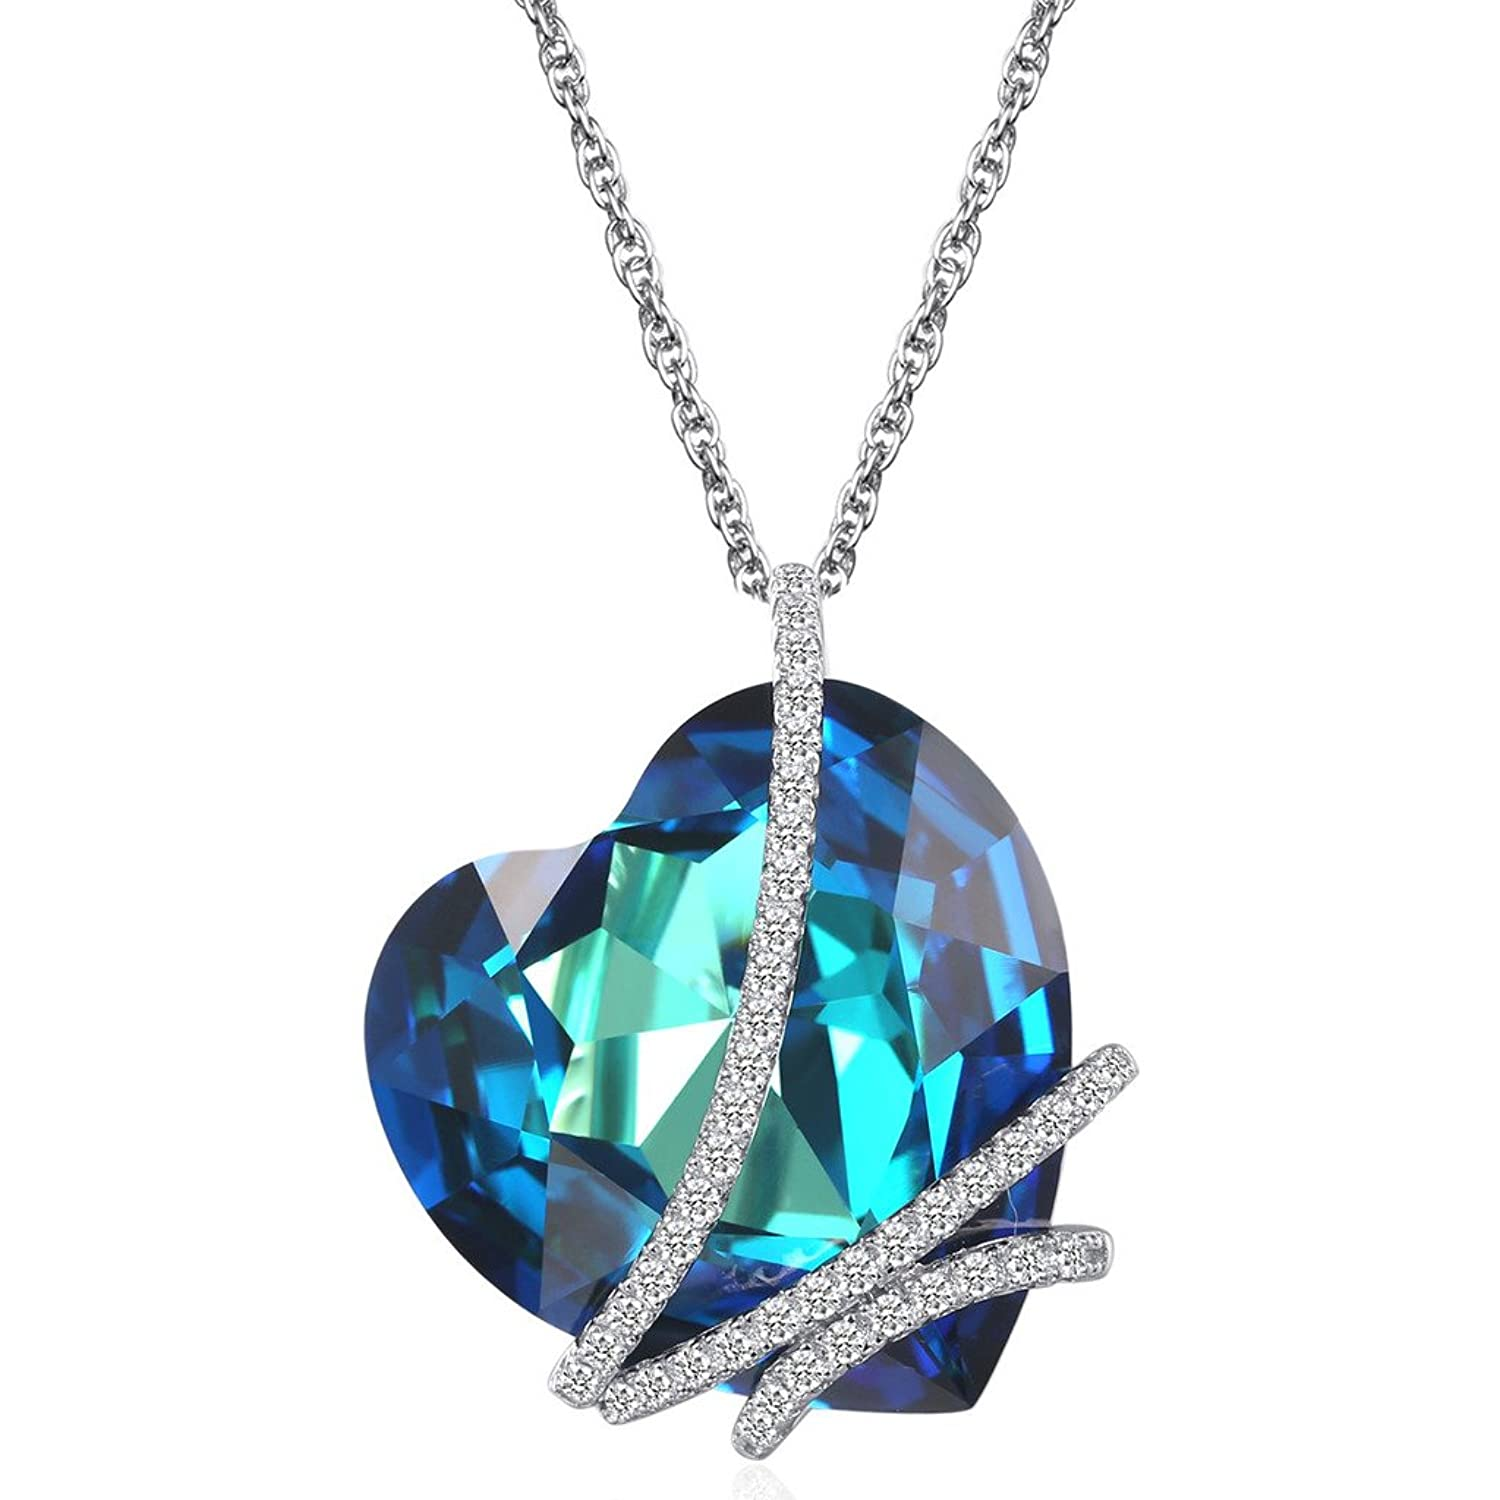 Amazon caperci heart of the ocean sterling silver heart amazon caperci heart of the ocean sterling silver heart pendant necklace made with swarovski crystal blue jewelry aloadofball Image collections